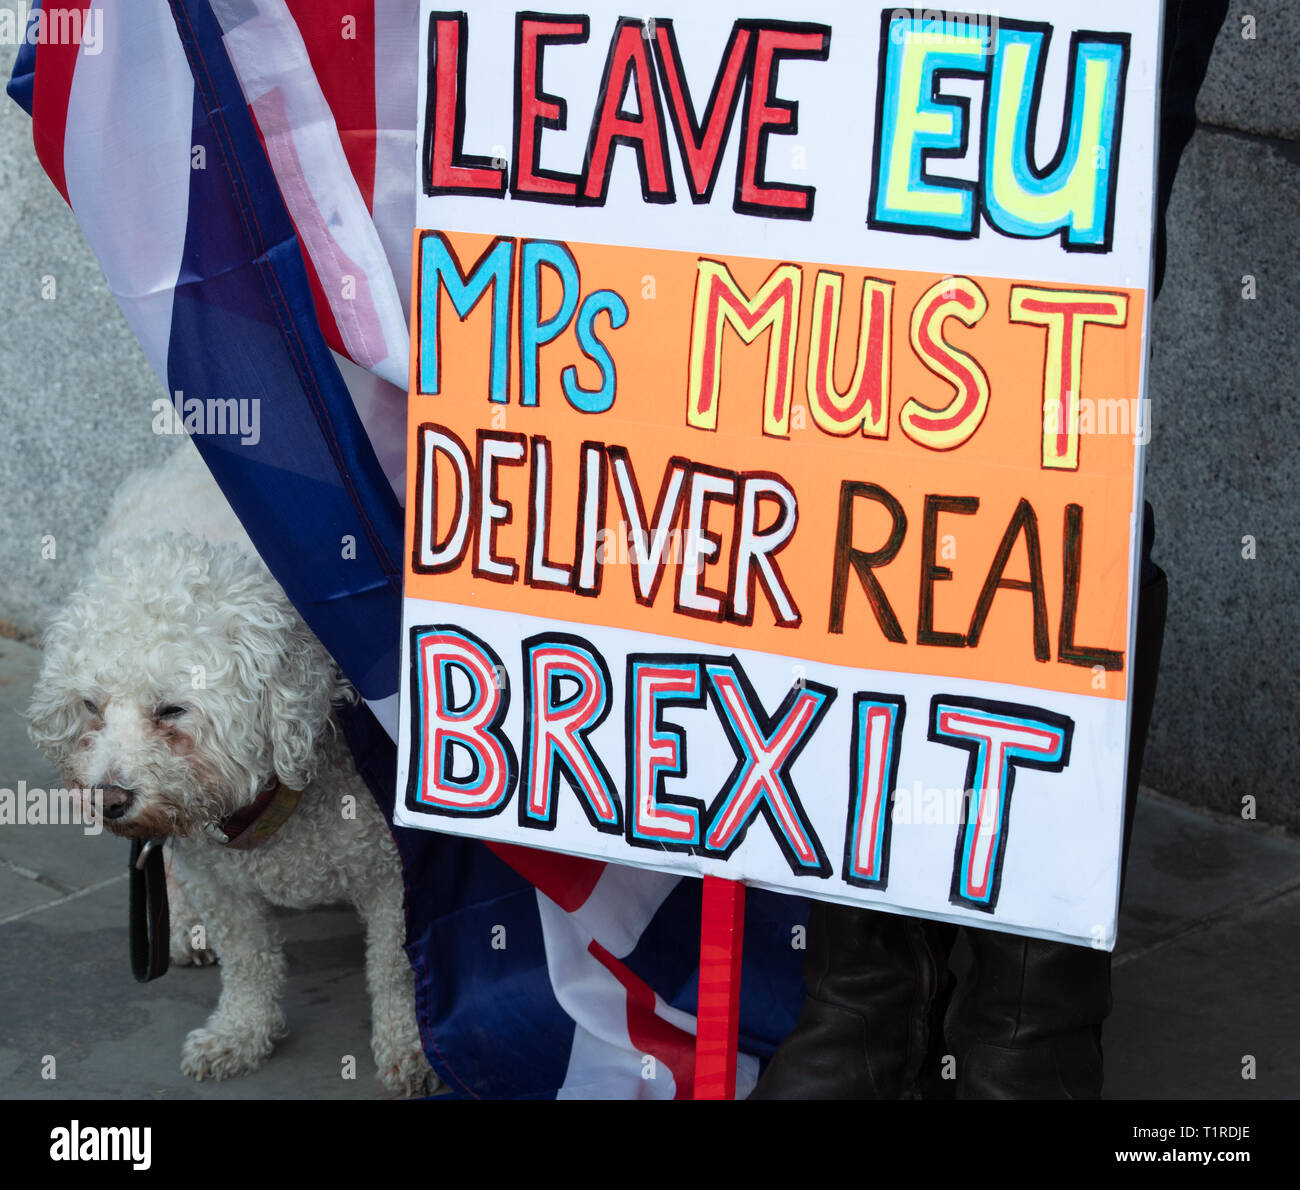 London, UK. 28th March 2019. Brexiteer and her dog stand in front of the House of Parliament demonstrating with boards and Union Jacks. Credit: Joe Kuis / Alamy Live News - Stock Image